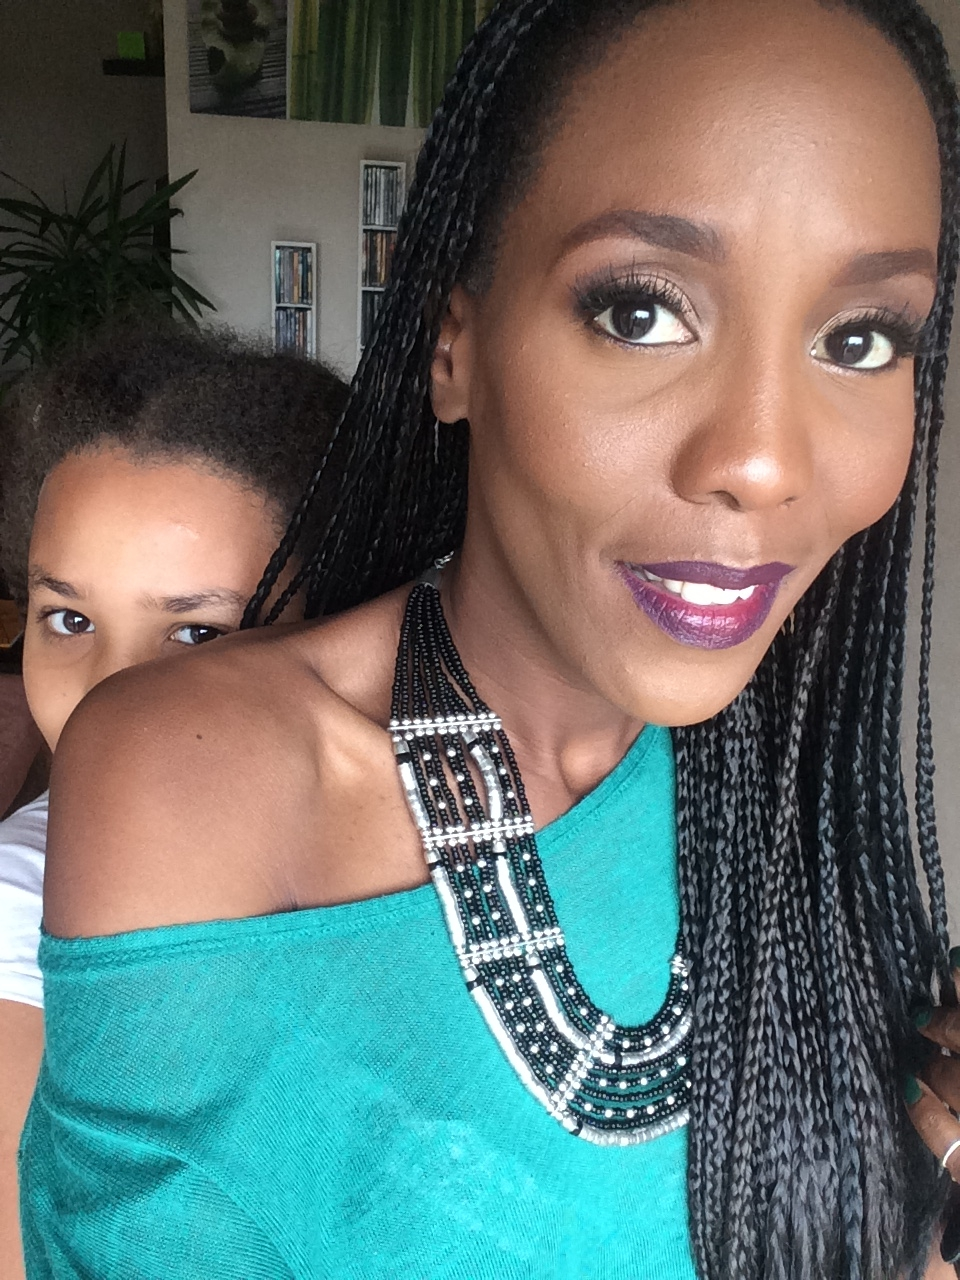 mother-daughter-love-family-blessed-bblogger